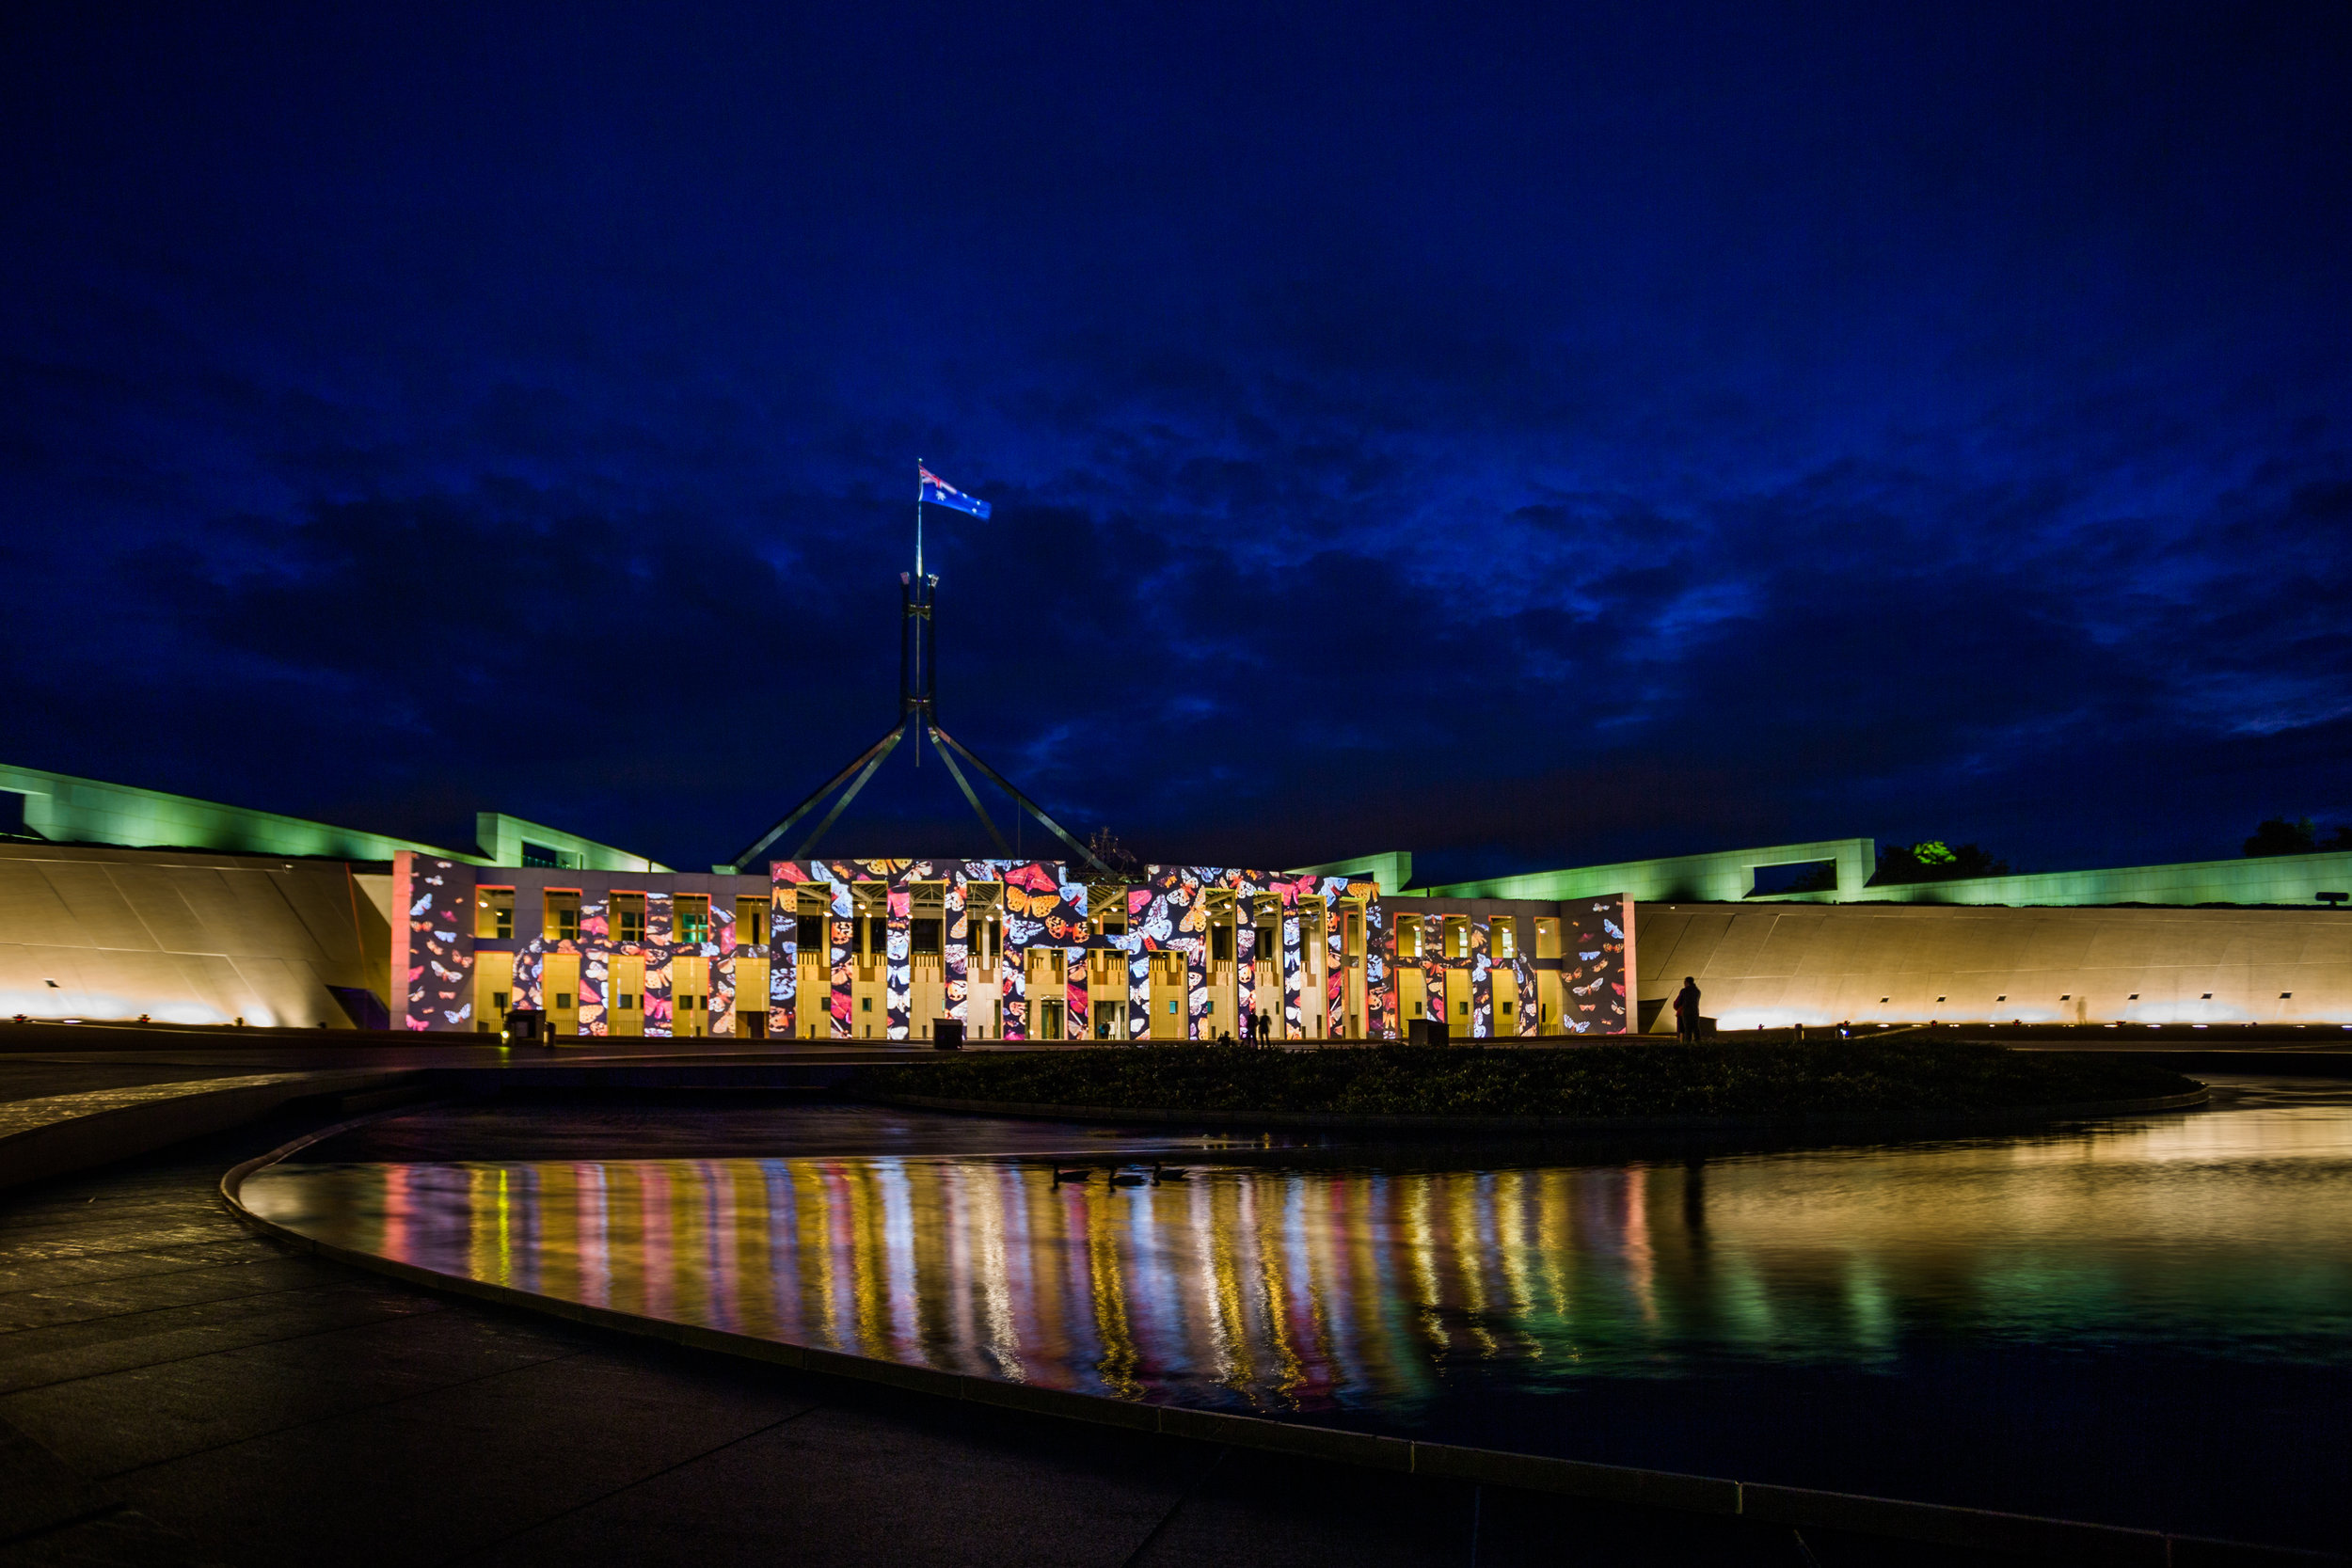 Enlighten 2017: Parliament House